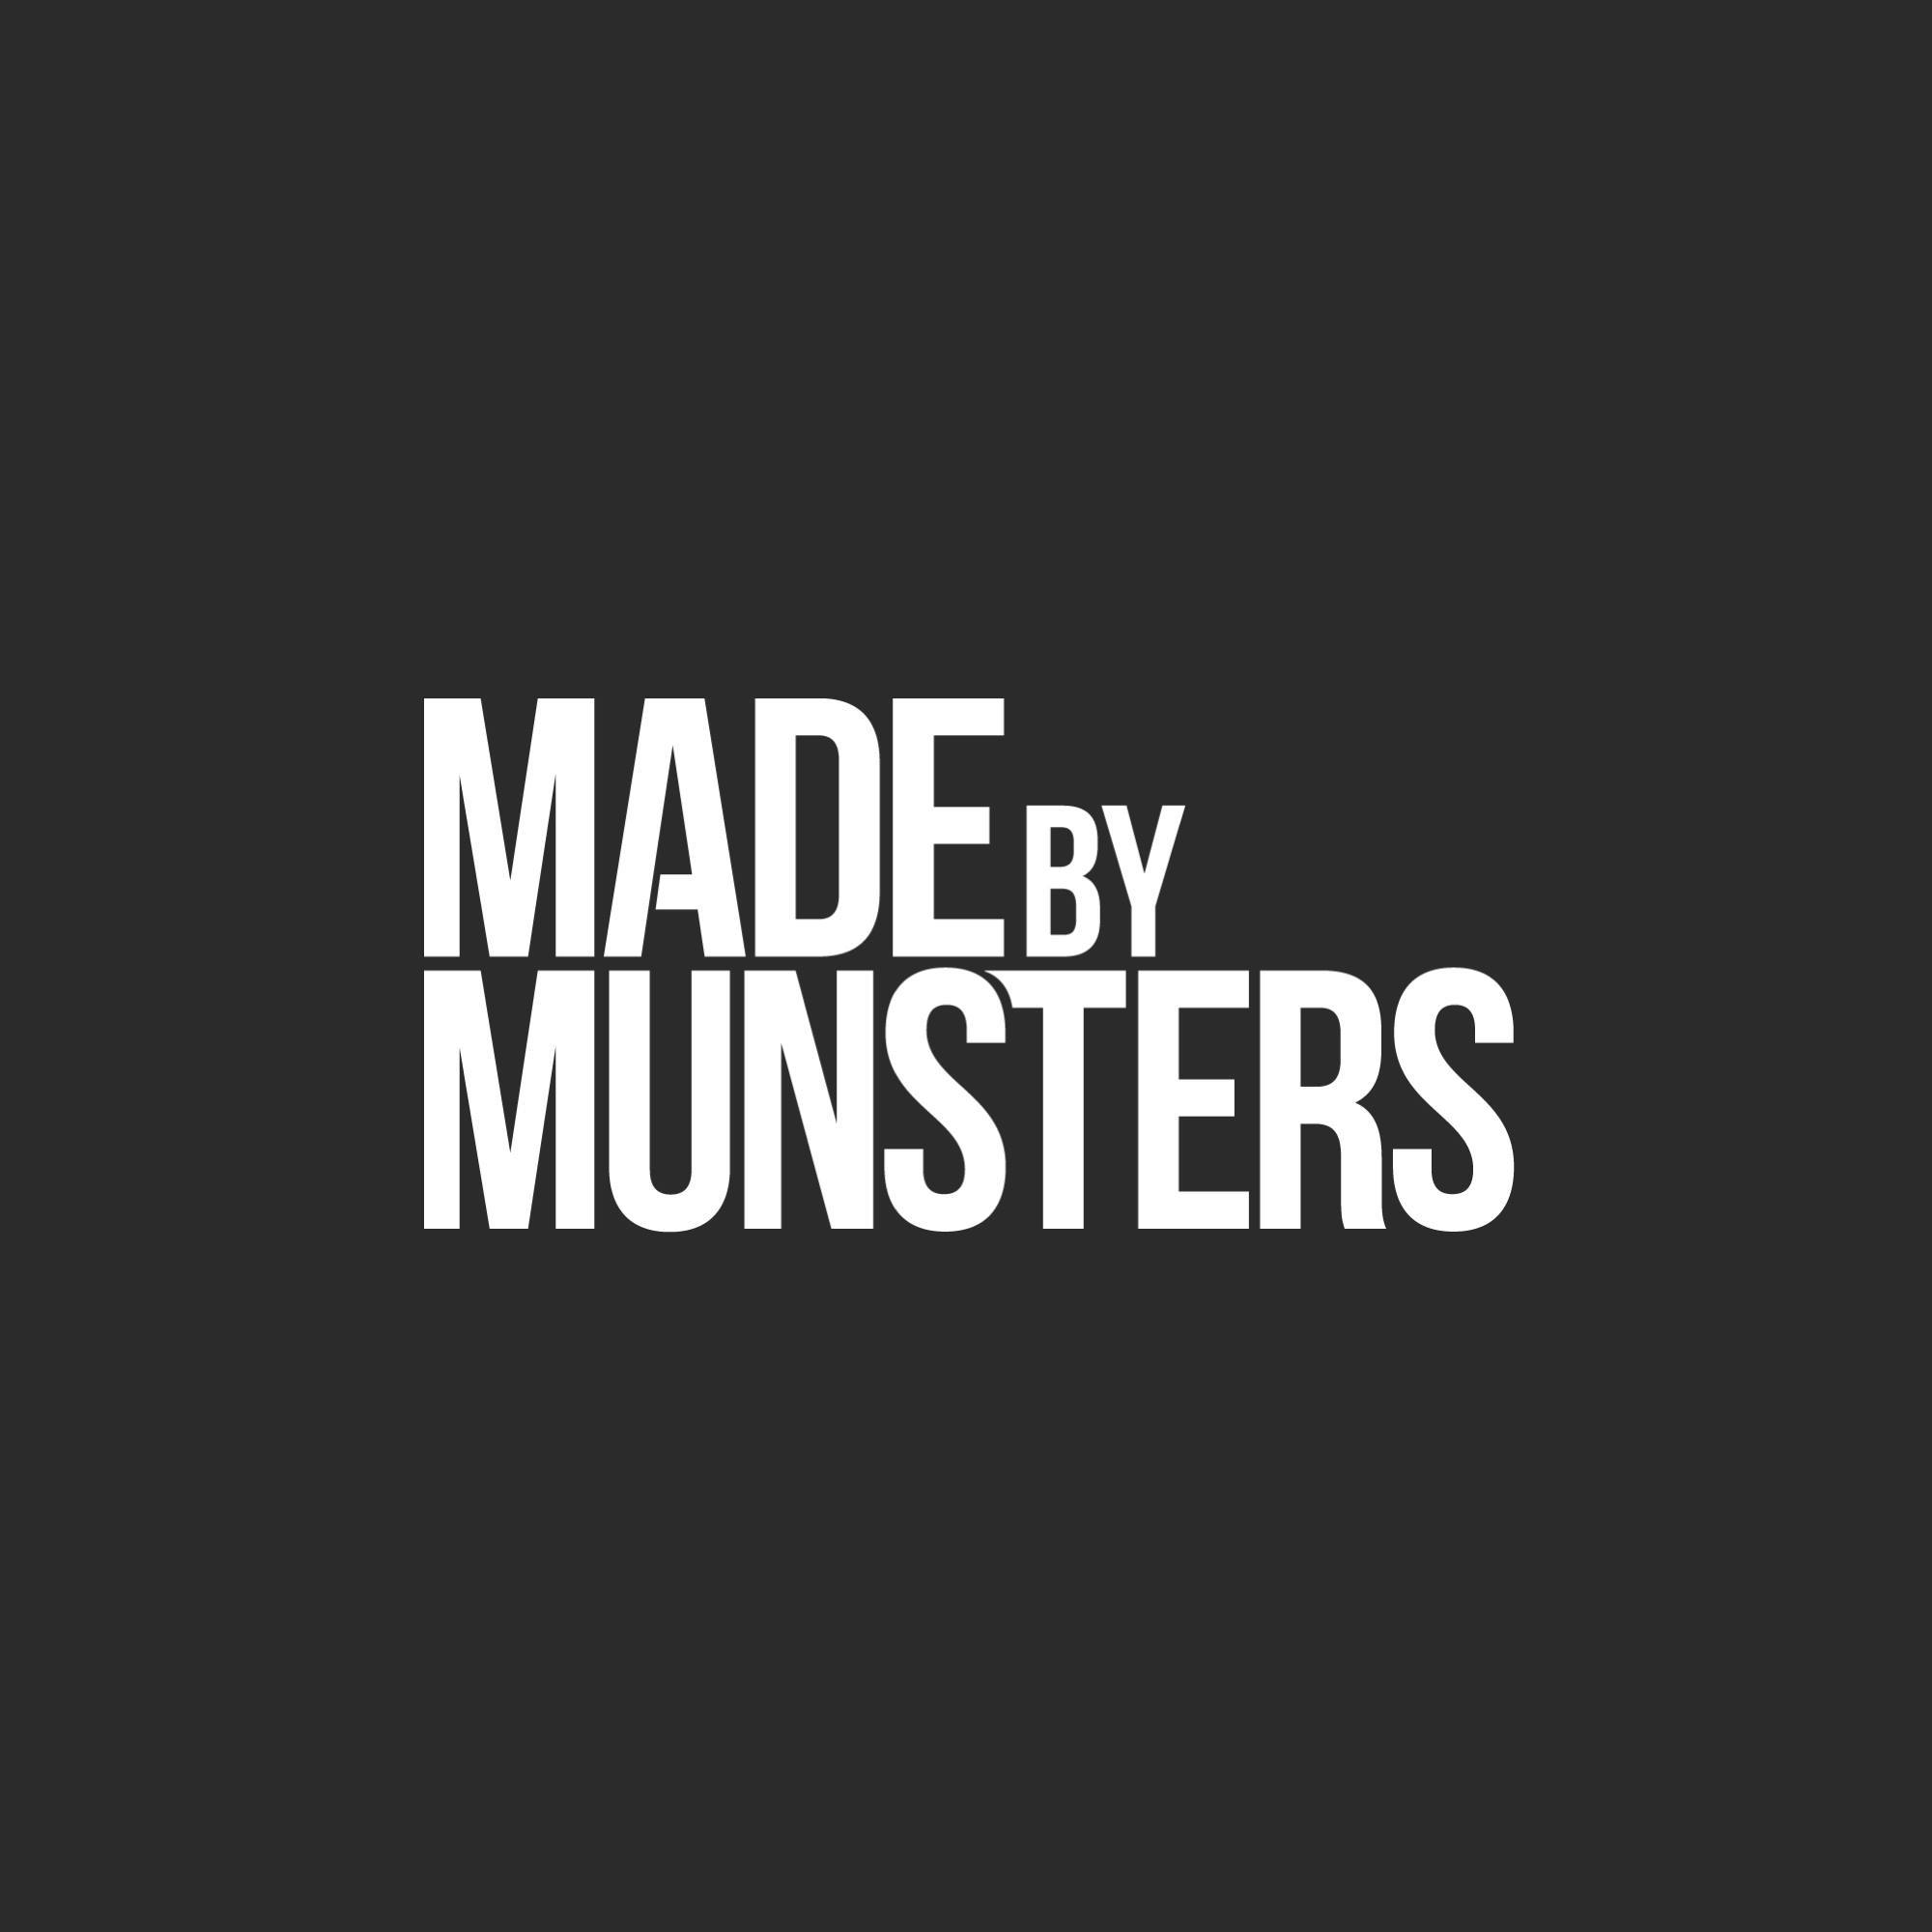 Made by Munsters Logo